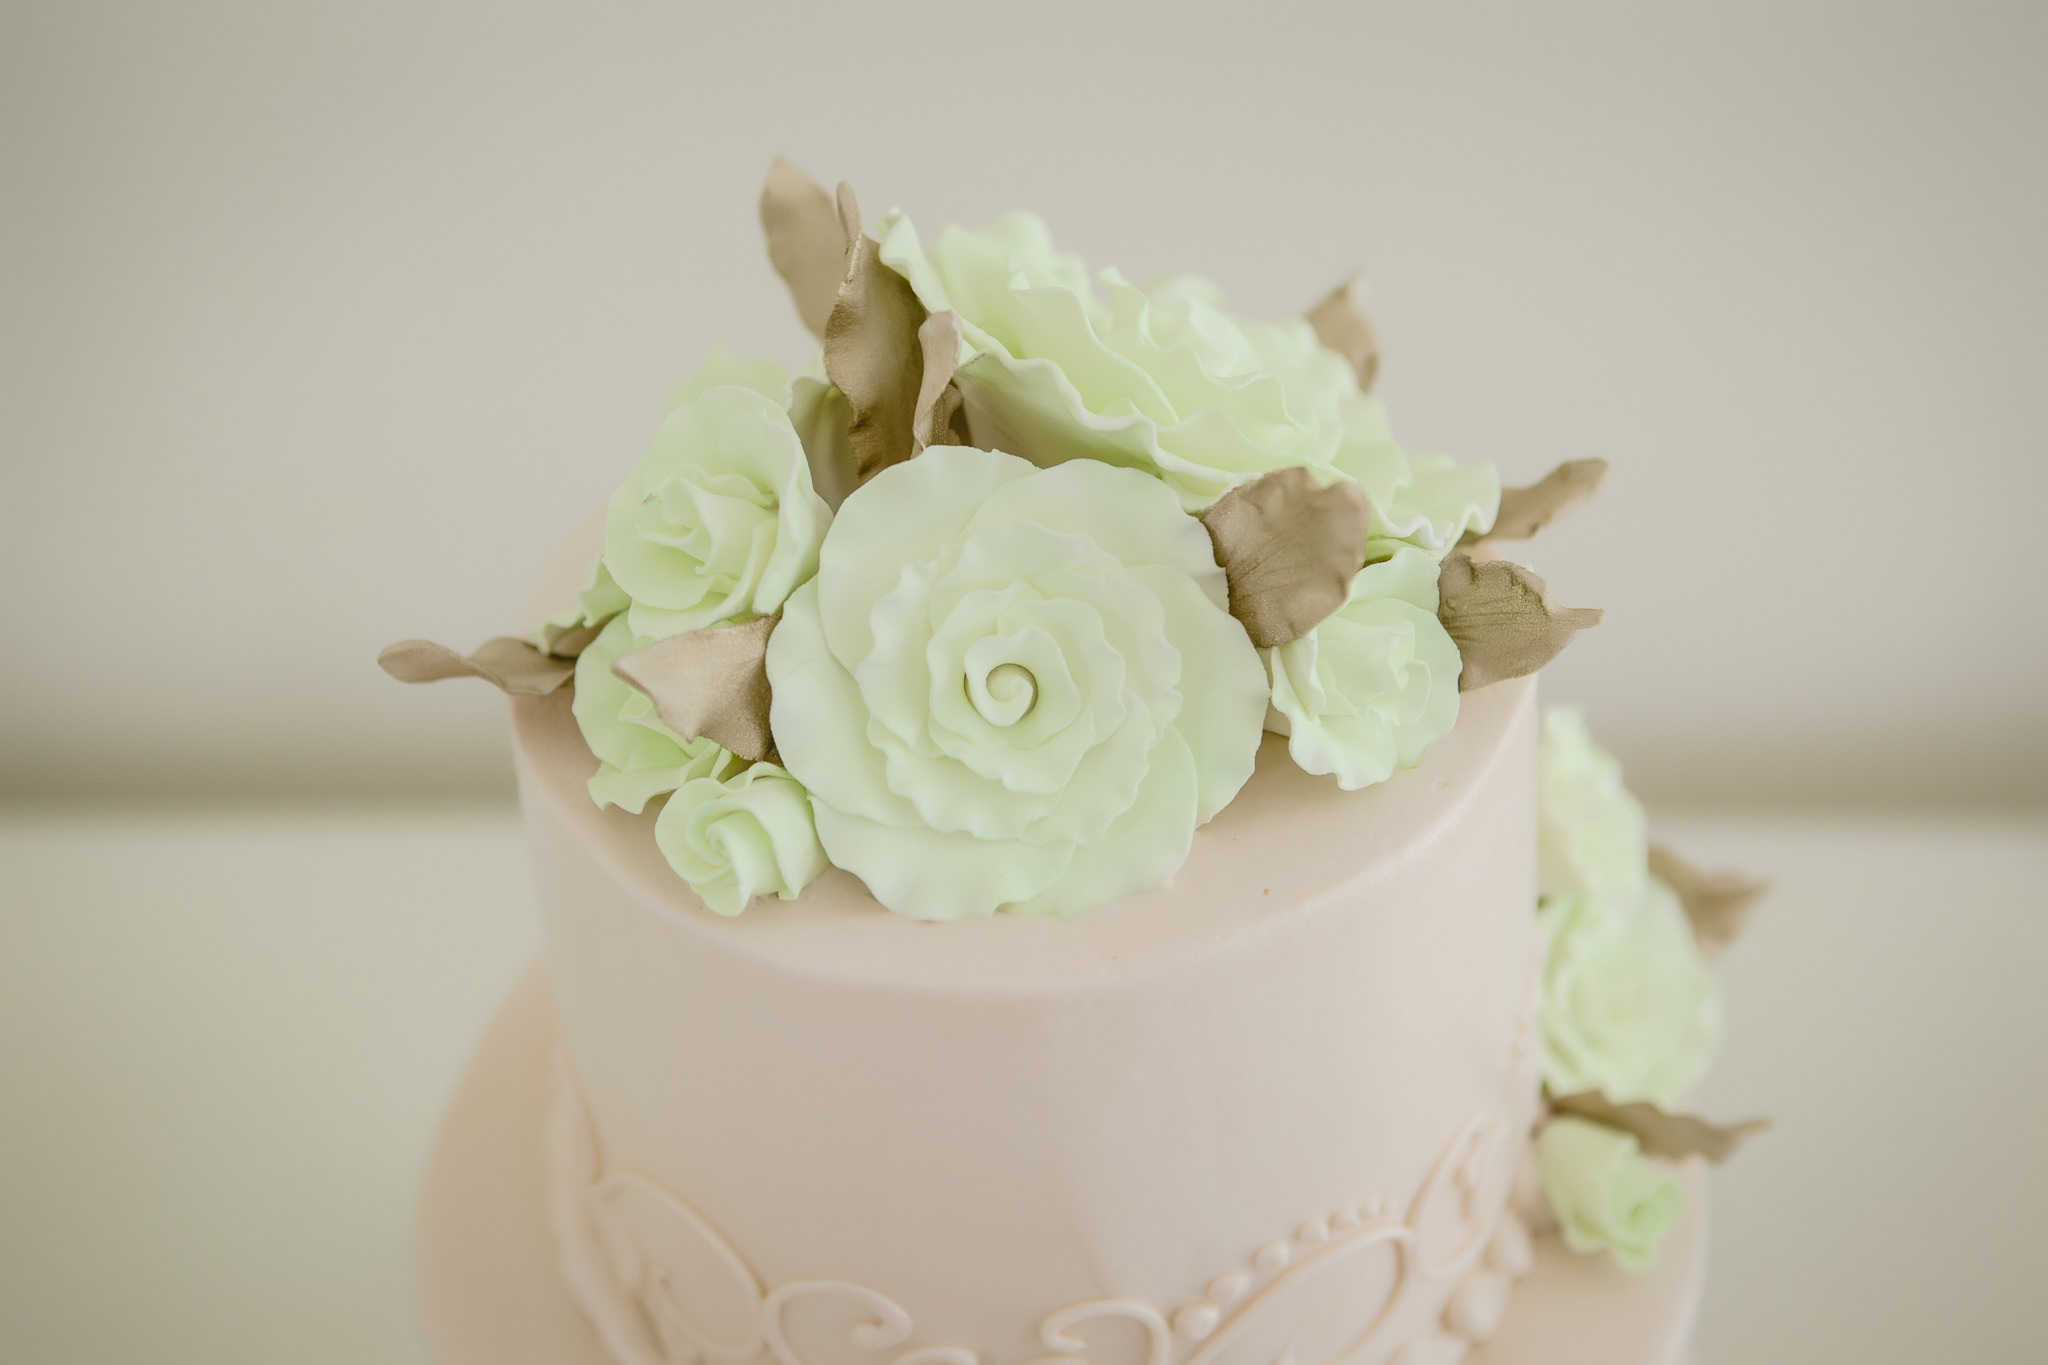 Floral icing details on a wedding cake by Oakmont Bakery